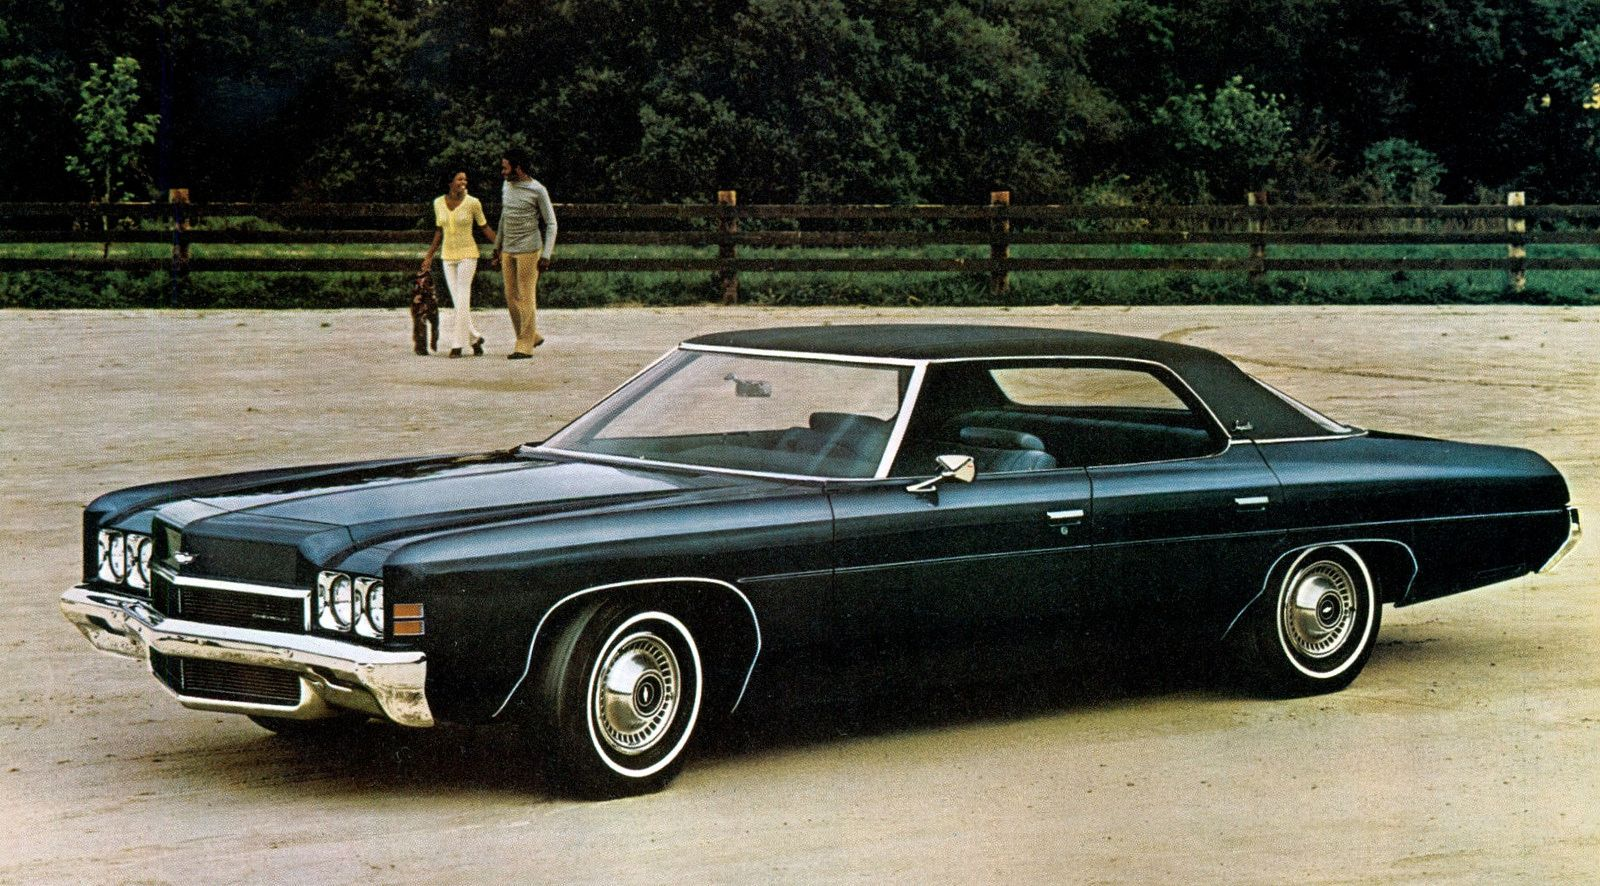 1972 chevrolet impala 4 door hardtop by coconv